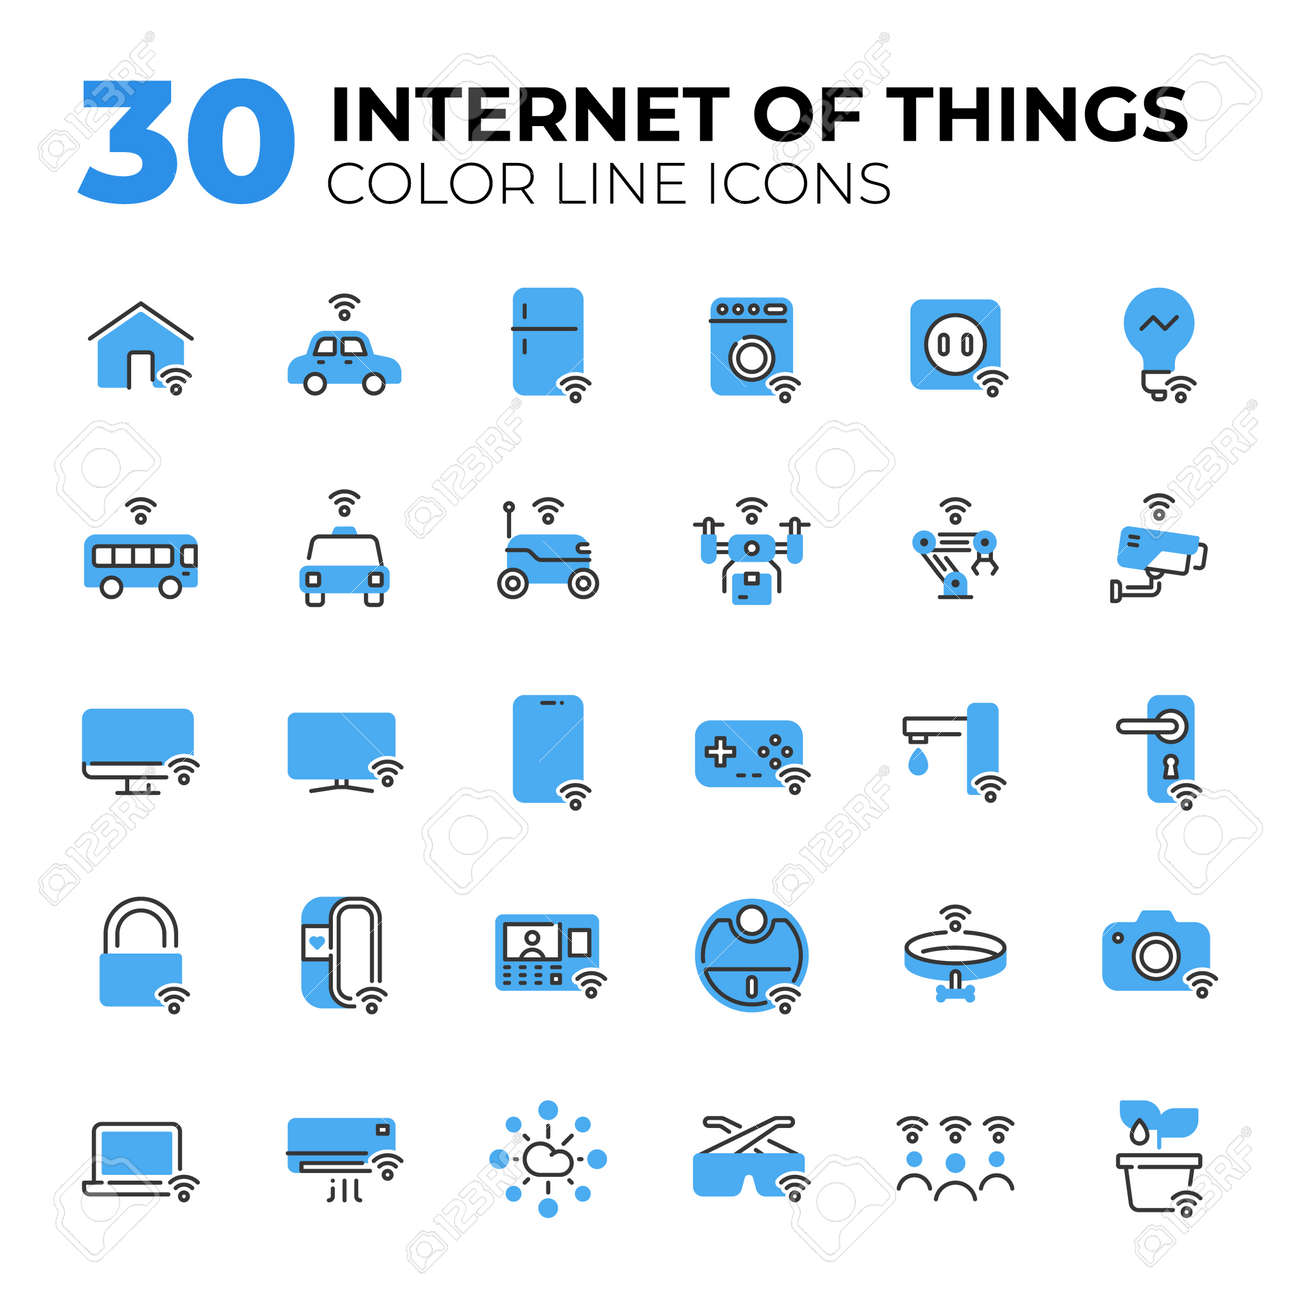 Internet of Things color line icons. - 155061256